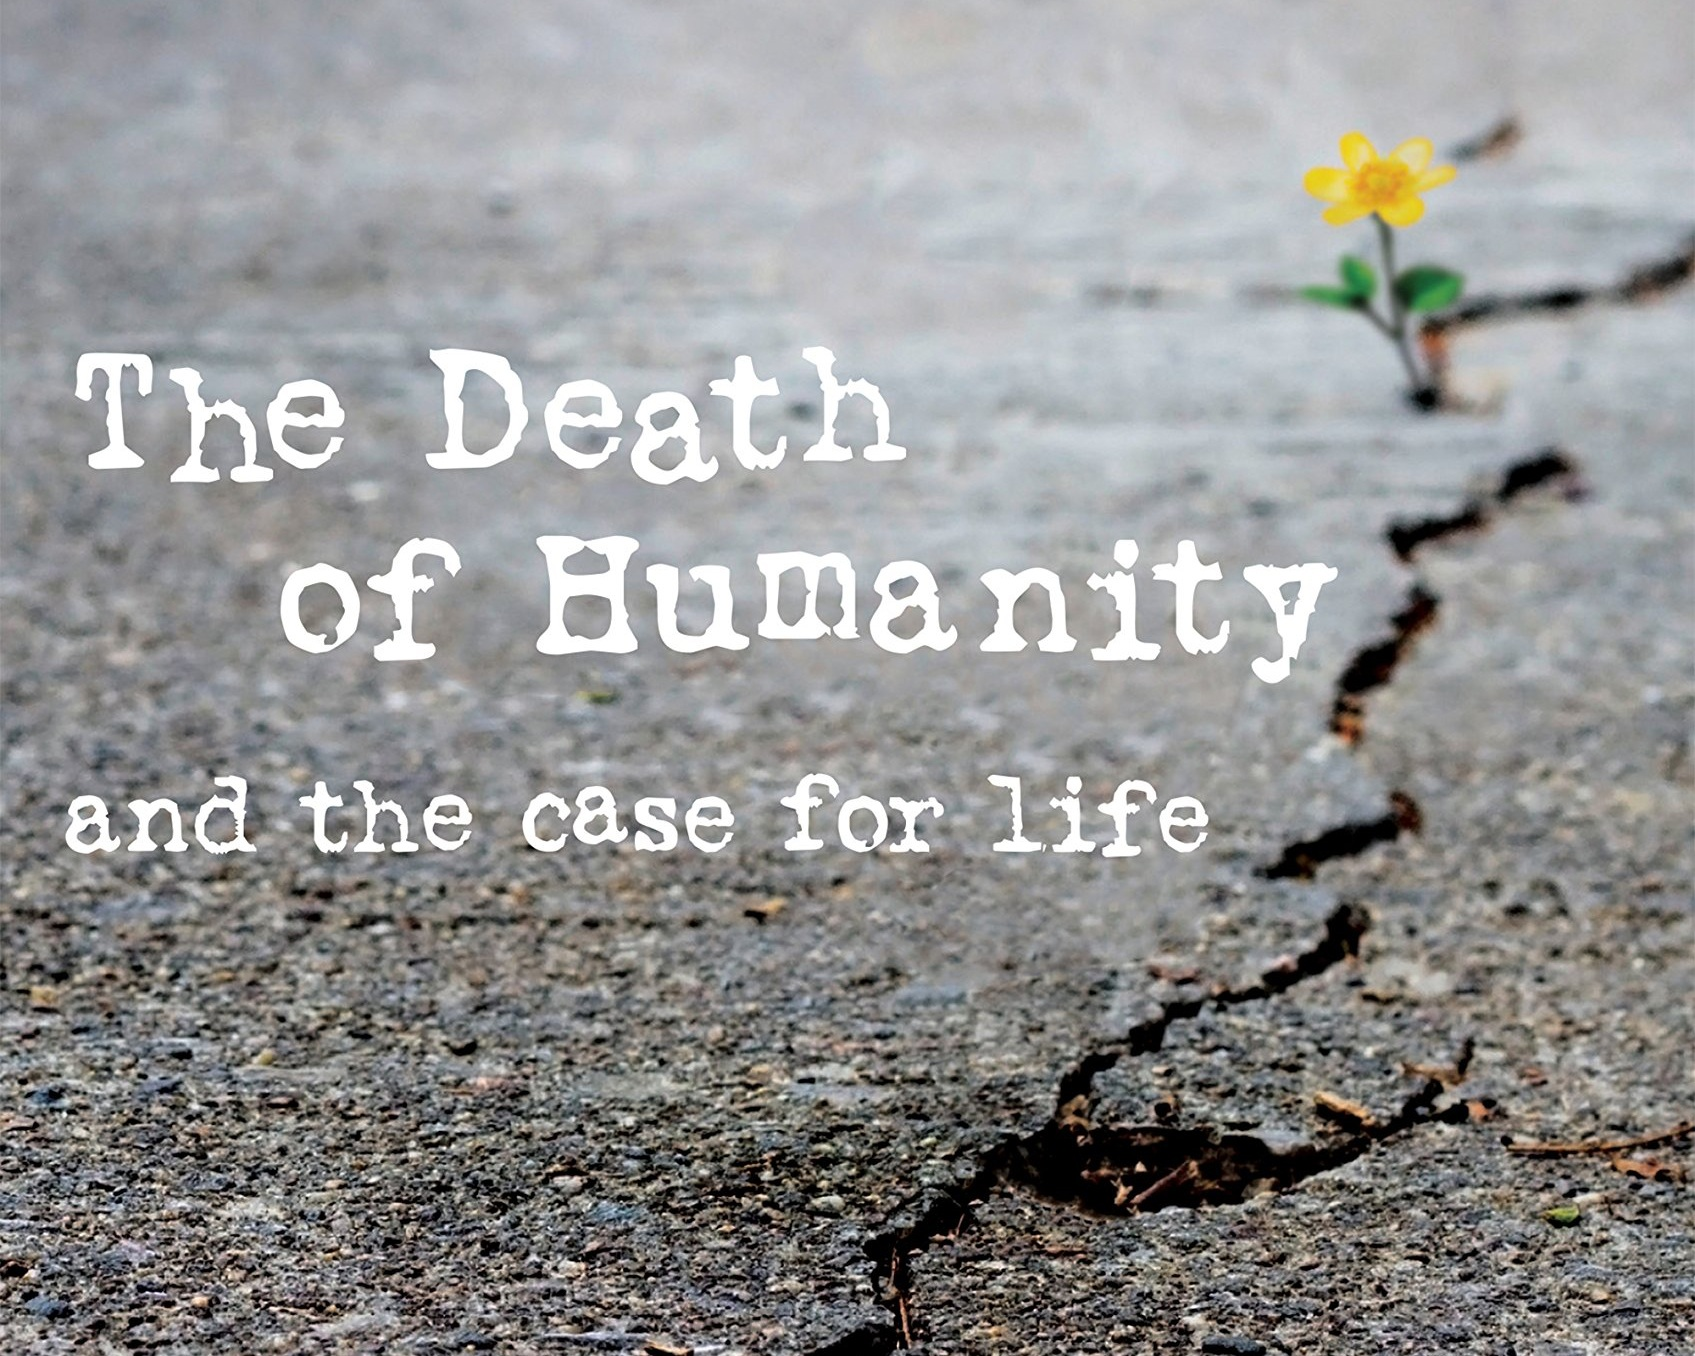 The Death of Humanity and the Case for Life - [2017, Austin, TX]Speaker: Dr. Richard WeikartThe long-held belief in the intrinsic value of human life is dying as the influence of our Christian cultural heritage is being eclipsed by the rising tide of secularism. In this presentation, Professor Weikart drew from his book of the same title to trace the rise of secular philosophies that have promoted the idea that humans are merely the chance outcome of impersonal forces and thus have no intrinsic purpose or value . . . These ideas have infiltrated our popular culture and our legal, educational, and legislature systems to the point where they devalue individual human life and deny objective morality.This event was cosponsored with The Lakeway Church of Austin.